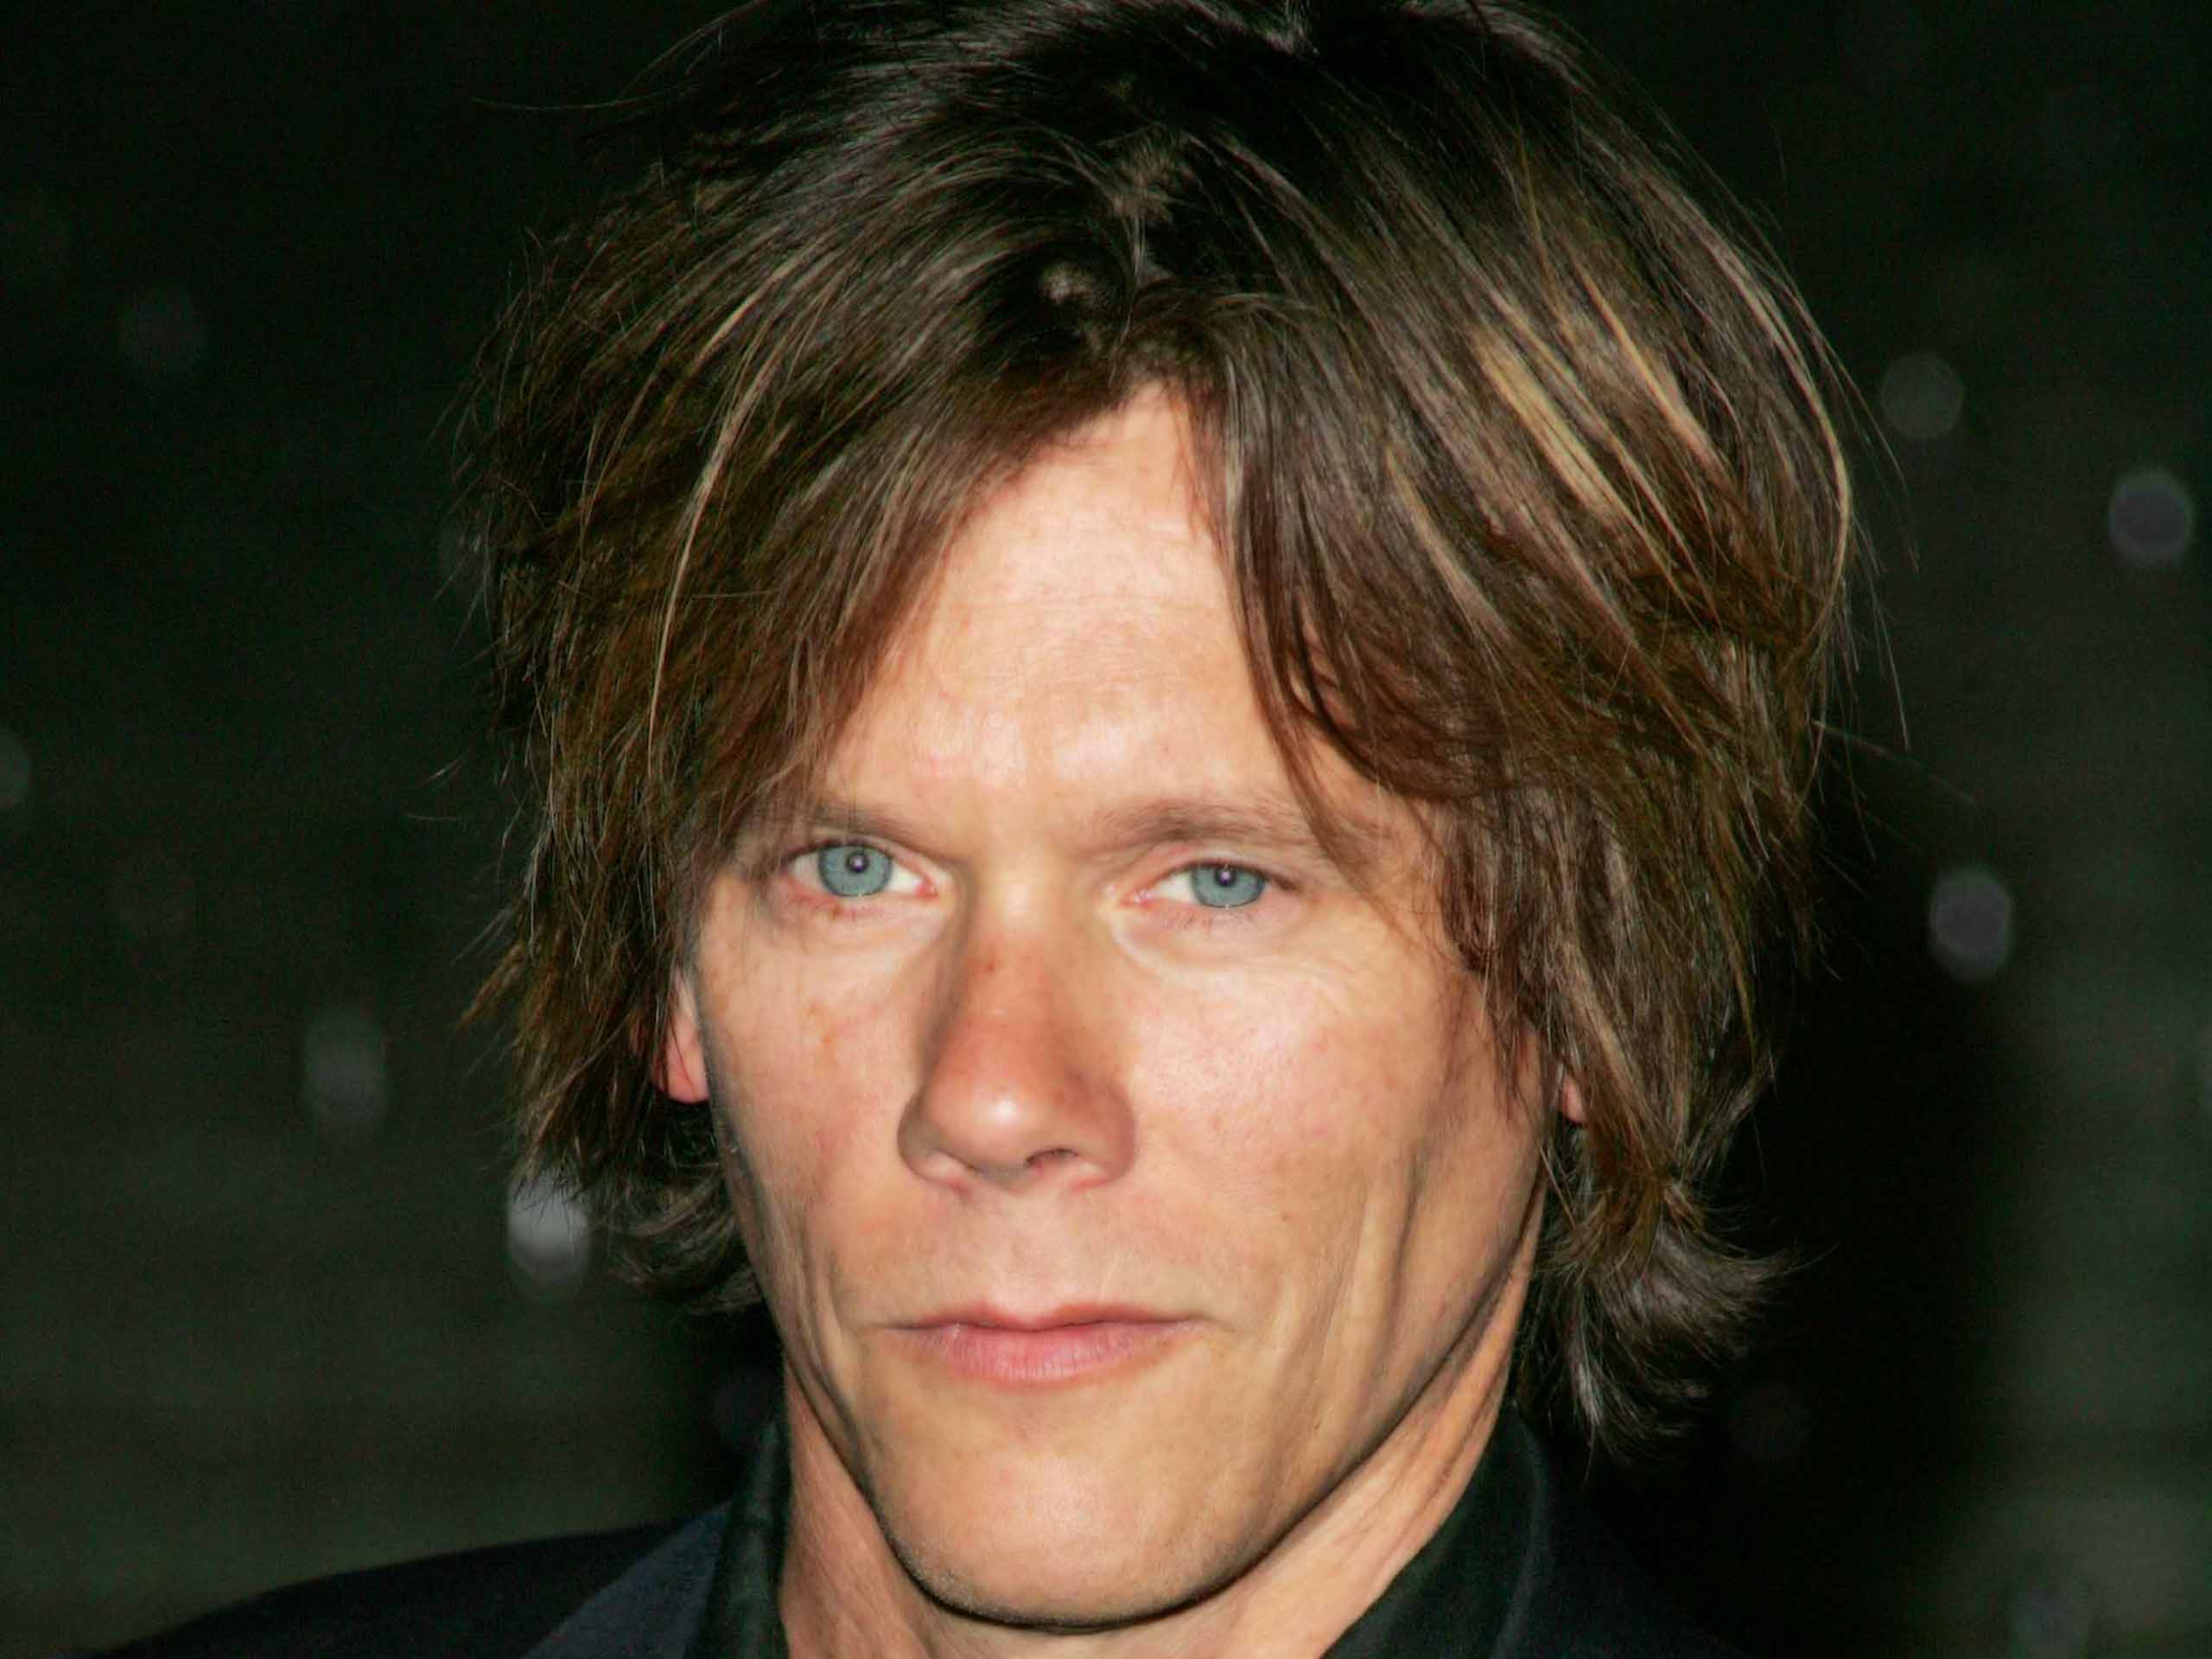 Pictures Of Kevin Bacon myideasbedroomcom 2560x1920